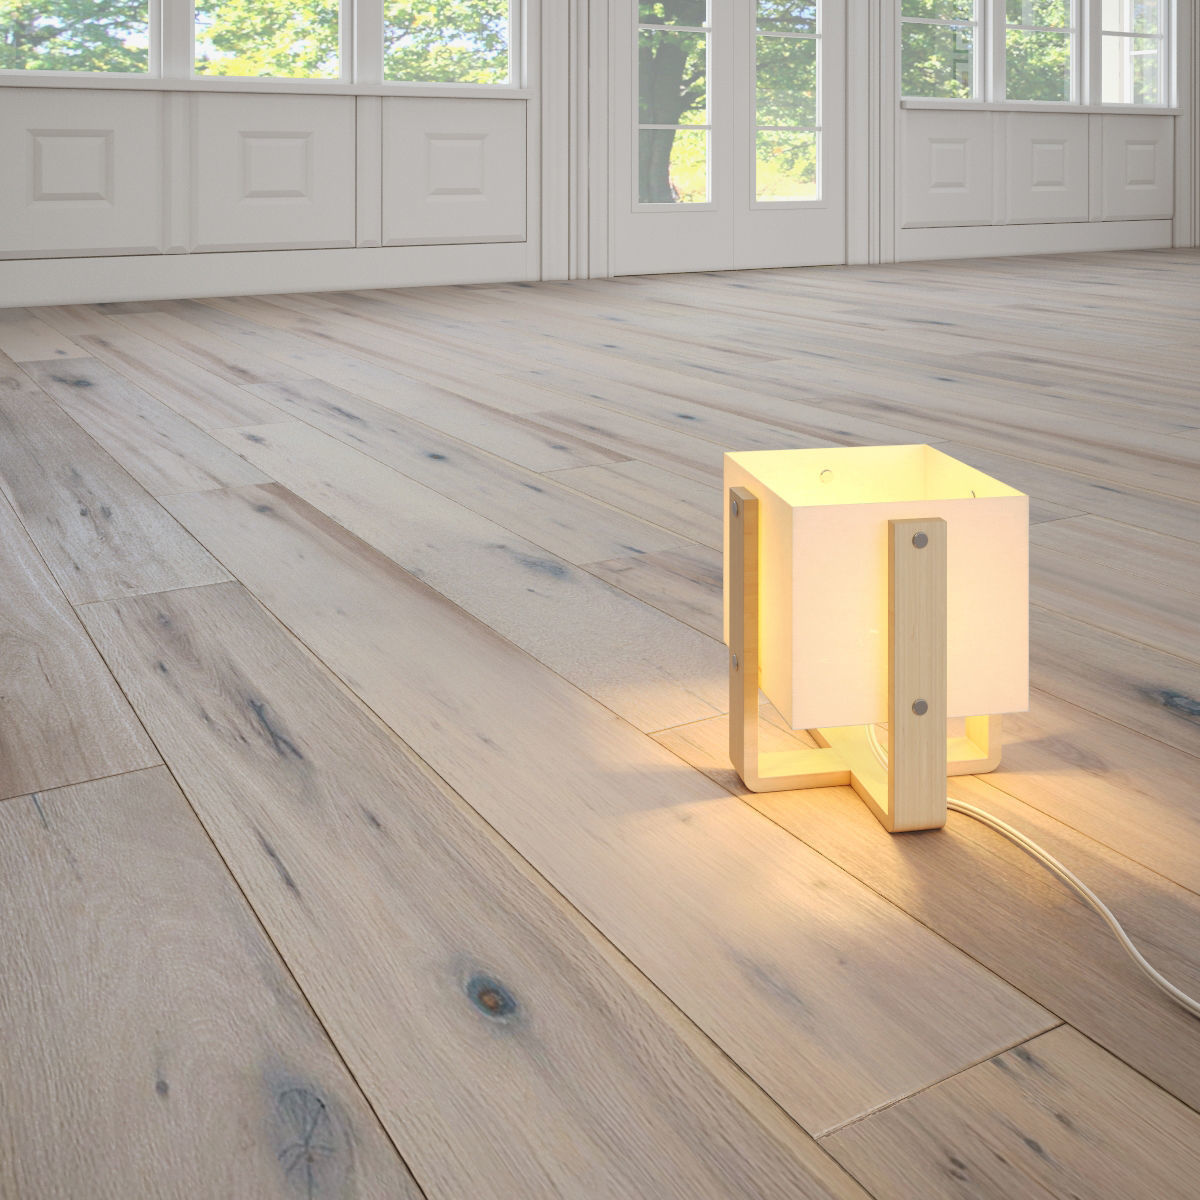 Cau Antique White Wooden Floor By Ducau 3d Model Max Fbx 1